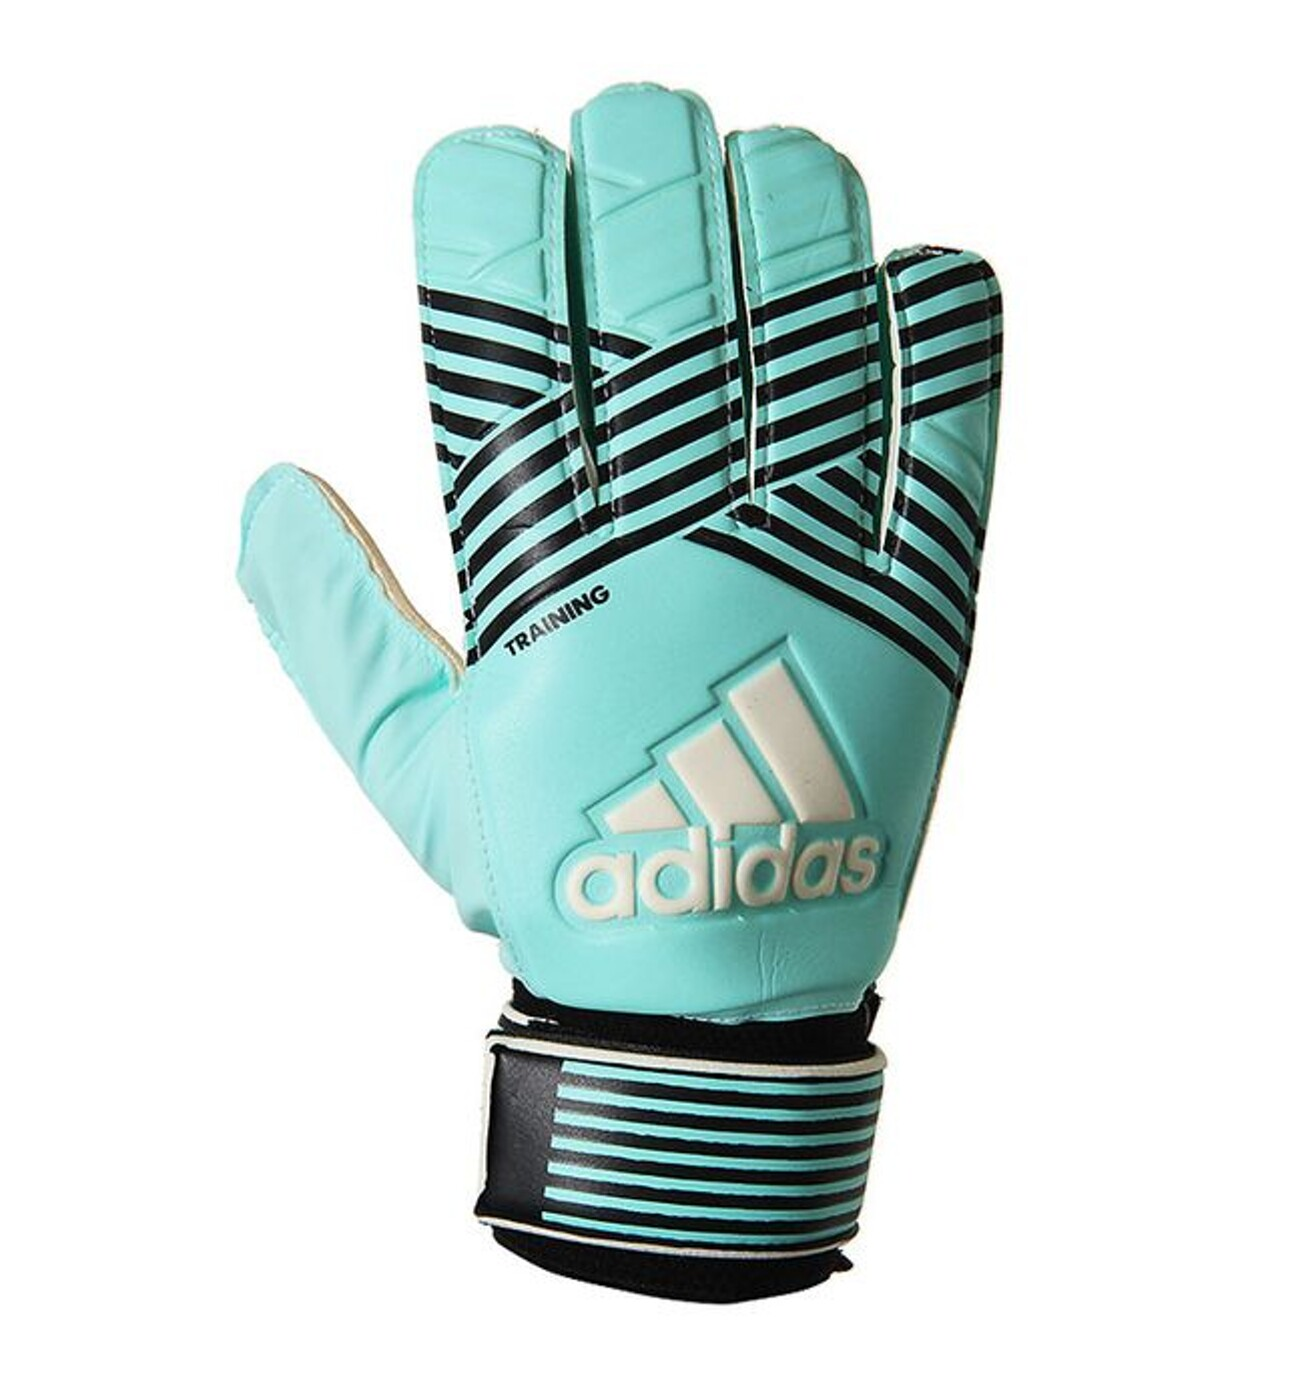 ADIDAS ACE TRAINING - Herren